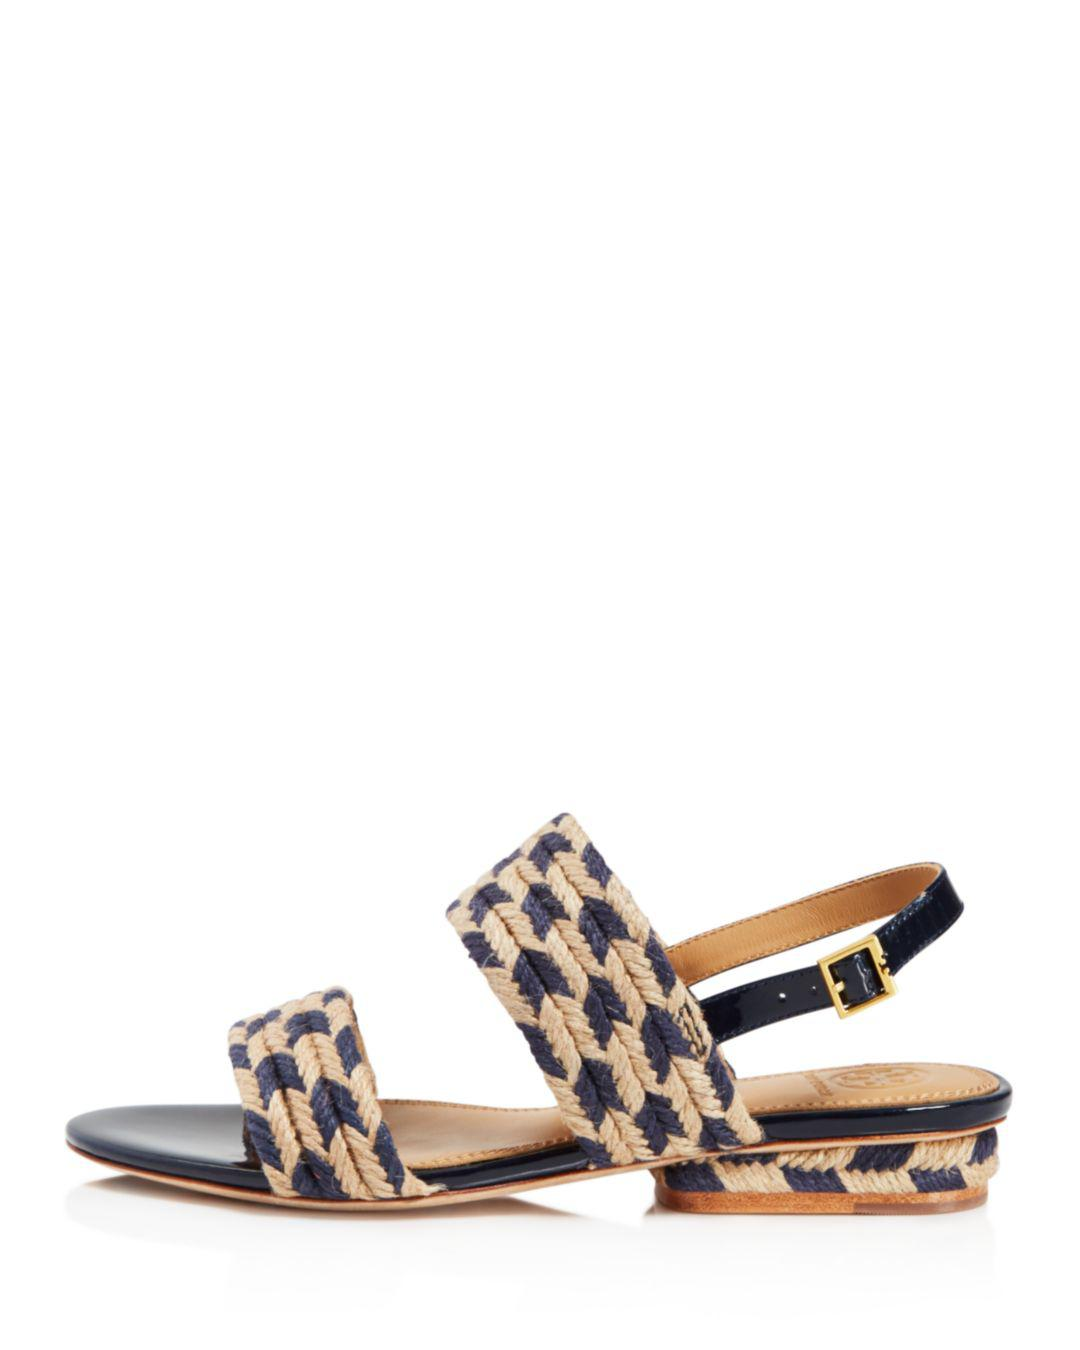 9f4596e9f614 Lyst - Tory Burch Women s Lola Woven Jute   Leather Slingback Sandals